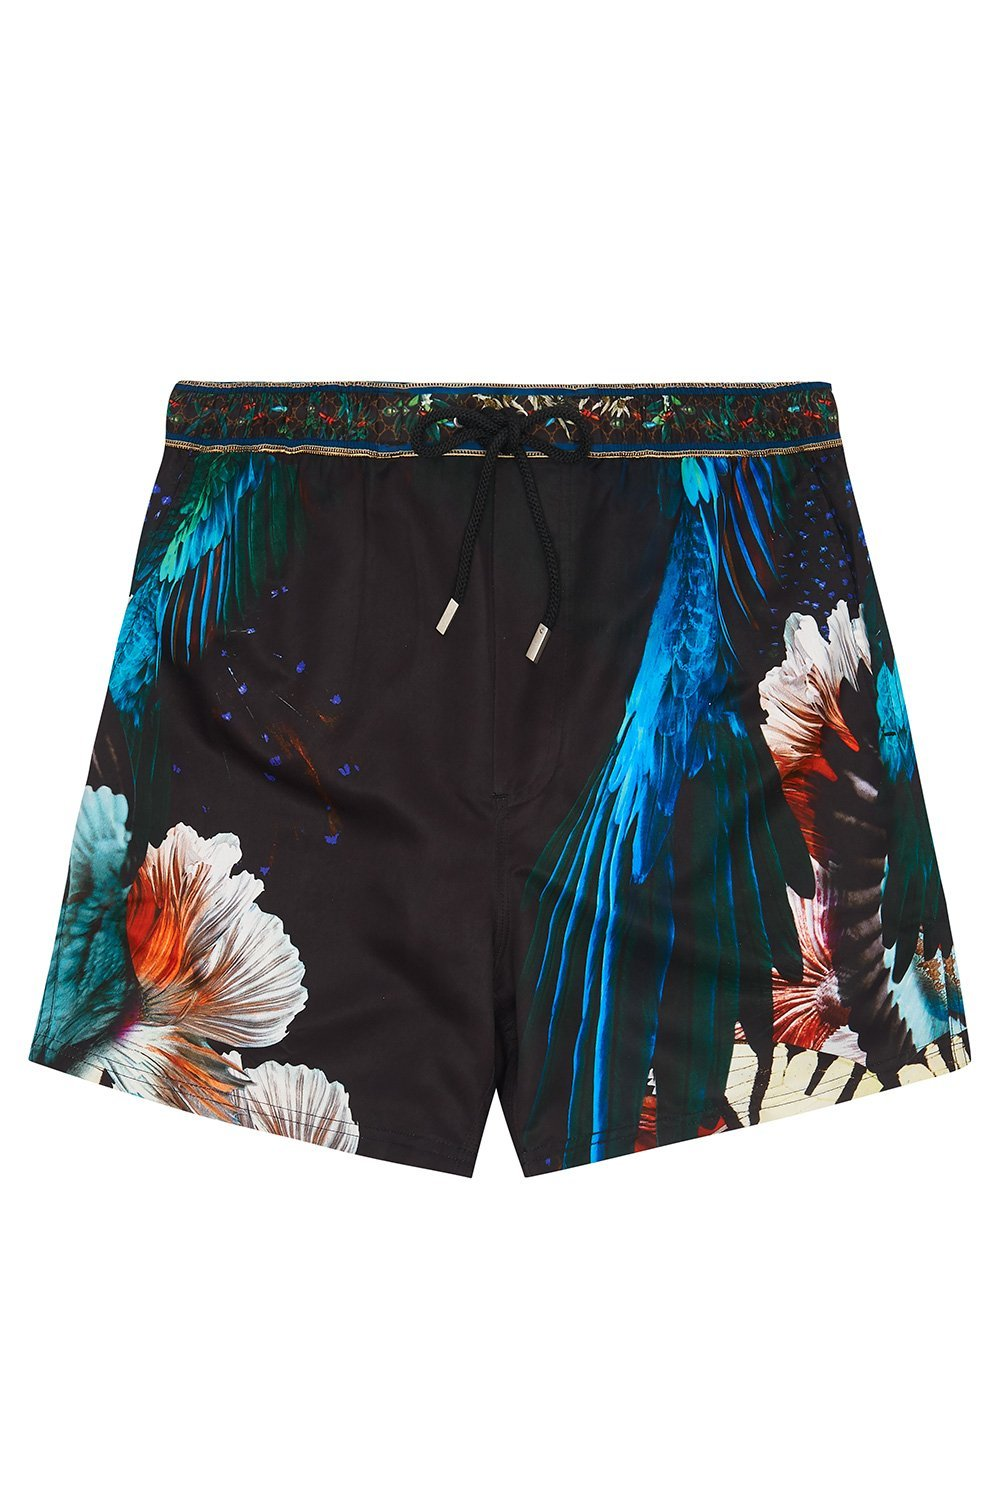 ELASTIC WAIST BOARDSHORT NIGHT FLIGHT